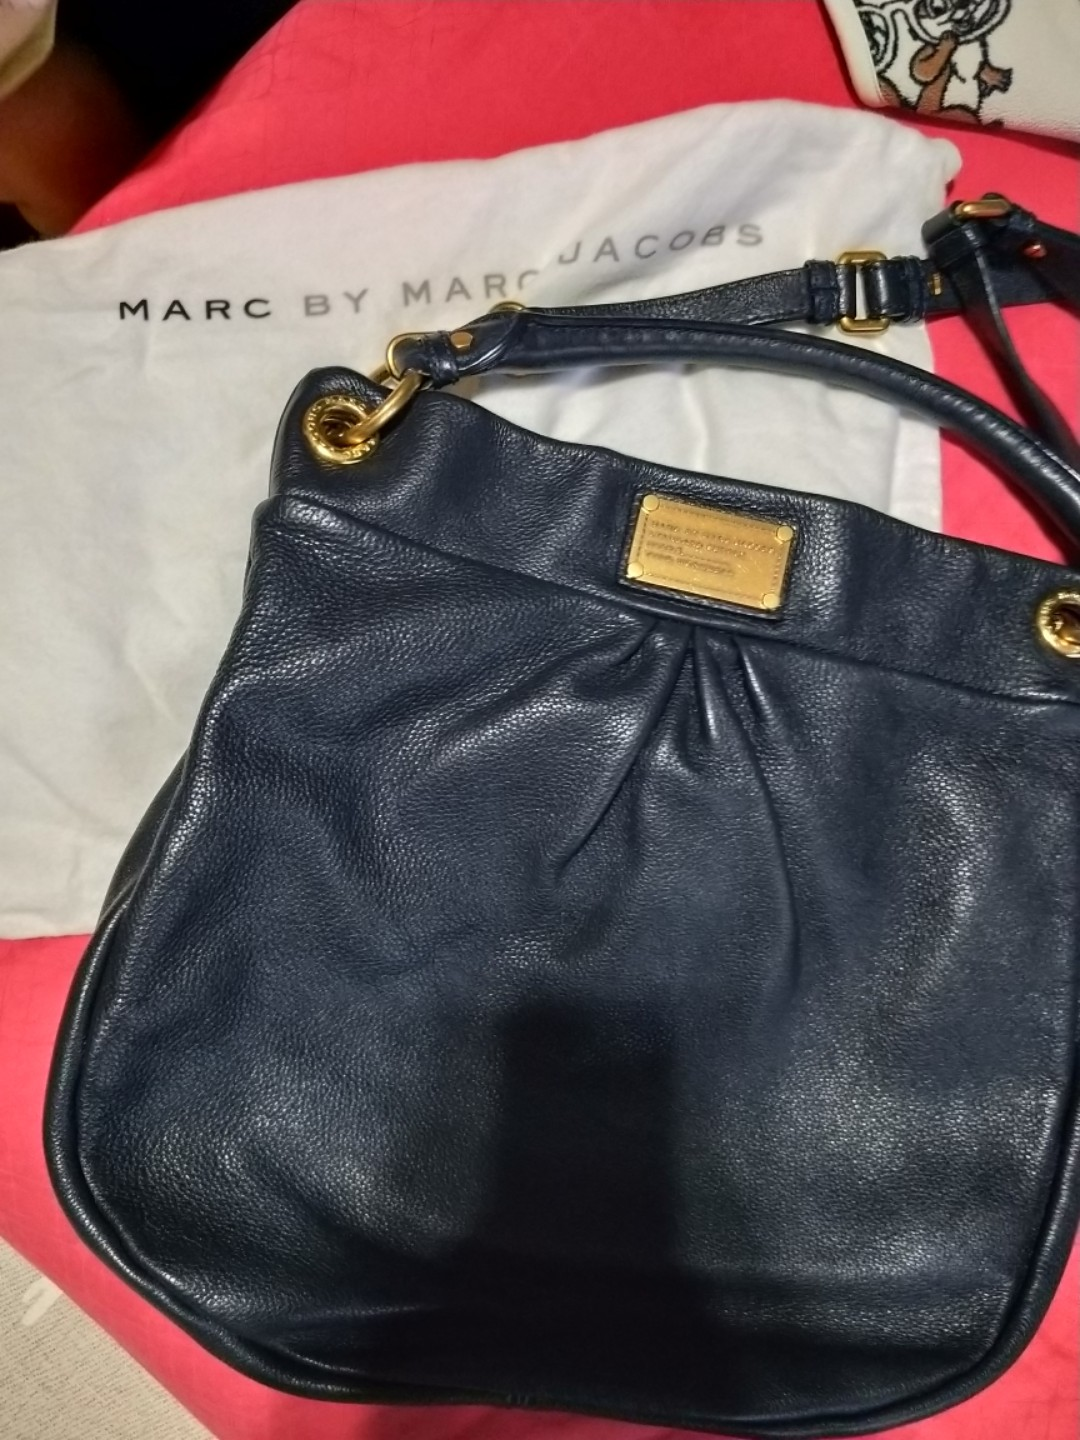 6d71849423c Marc Marc jacobs genuine leather crossbody tote bag, Luxury, Bags ...